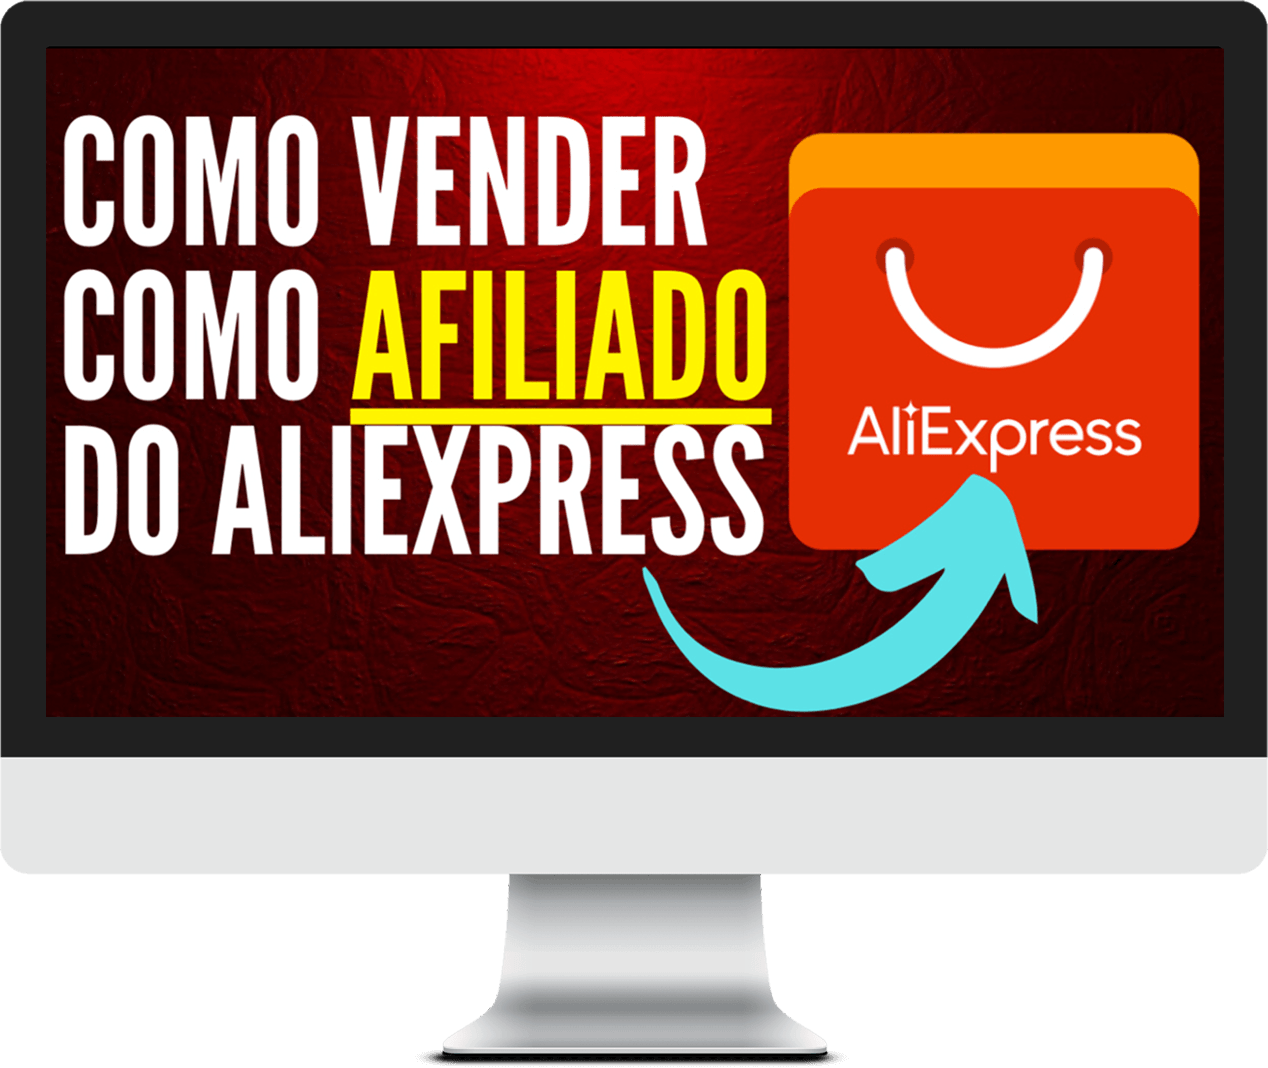 AFILIADO ALIEXPRESS